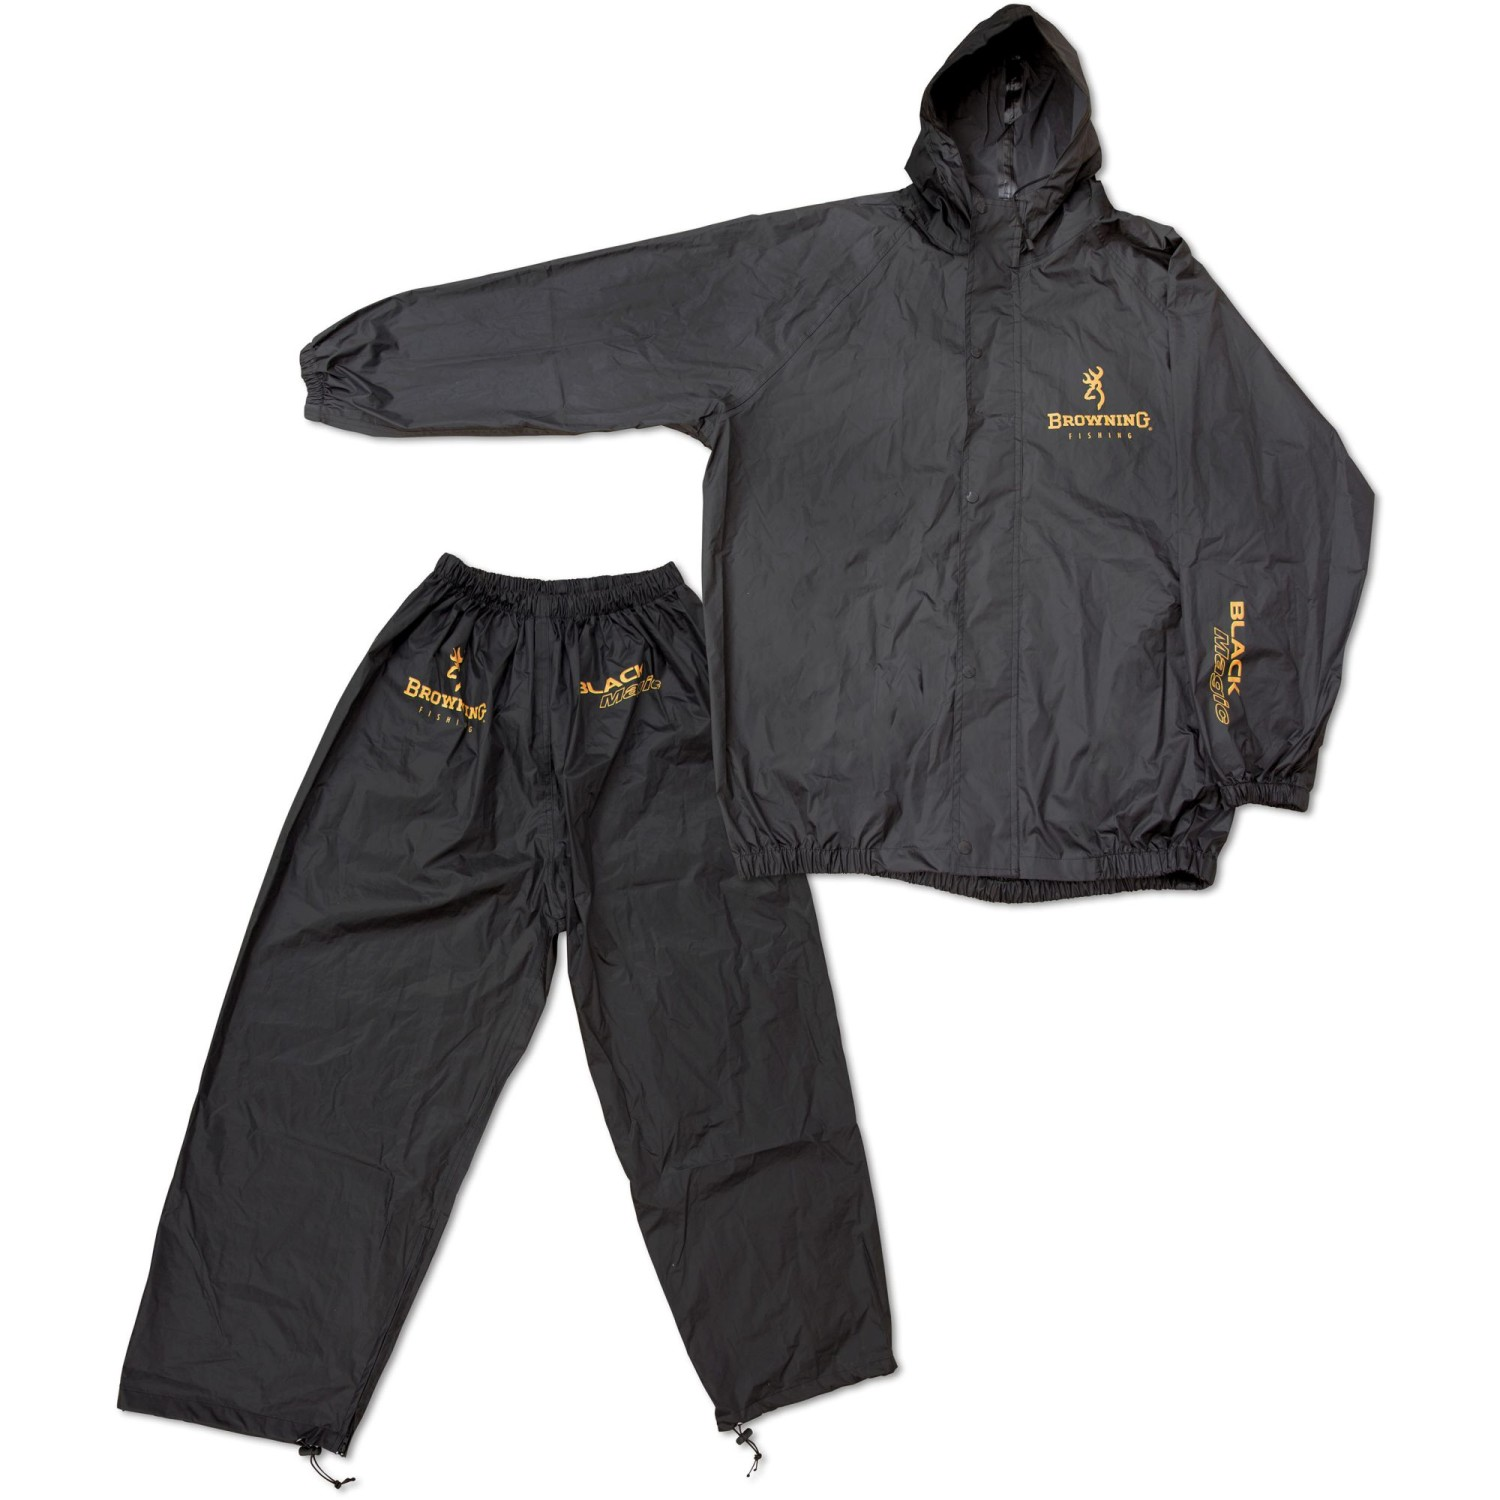 Anzüge Angelsport FOX RAGE Winter Suit XL Thermoanzug by TACKLE-DEALS !!!